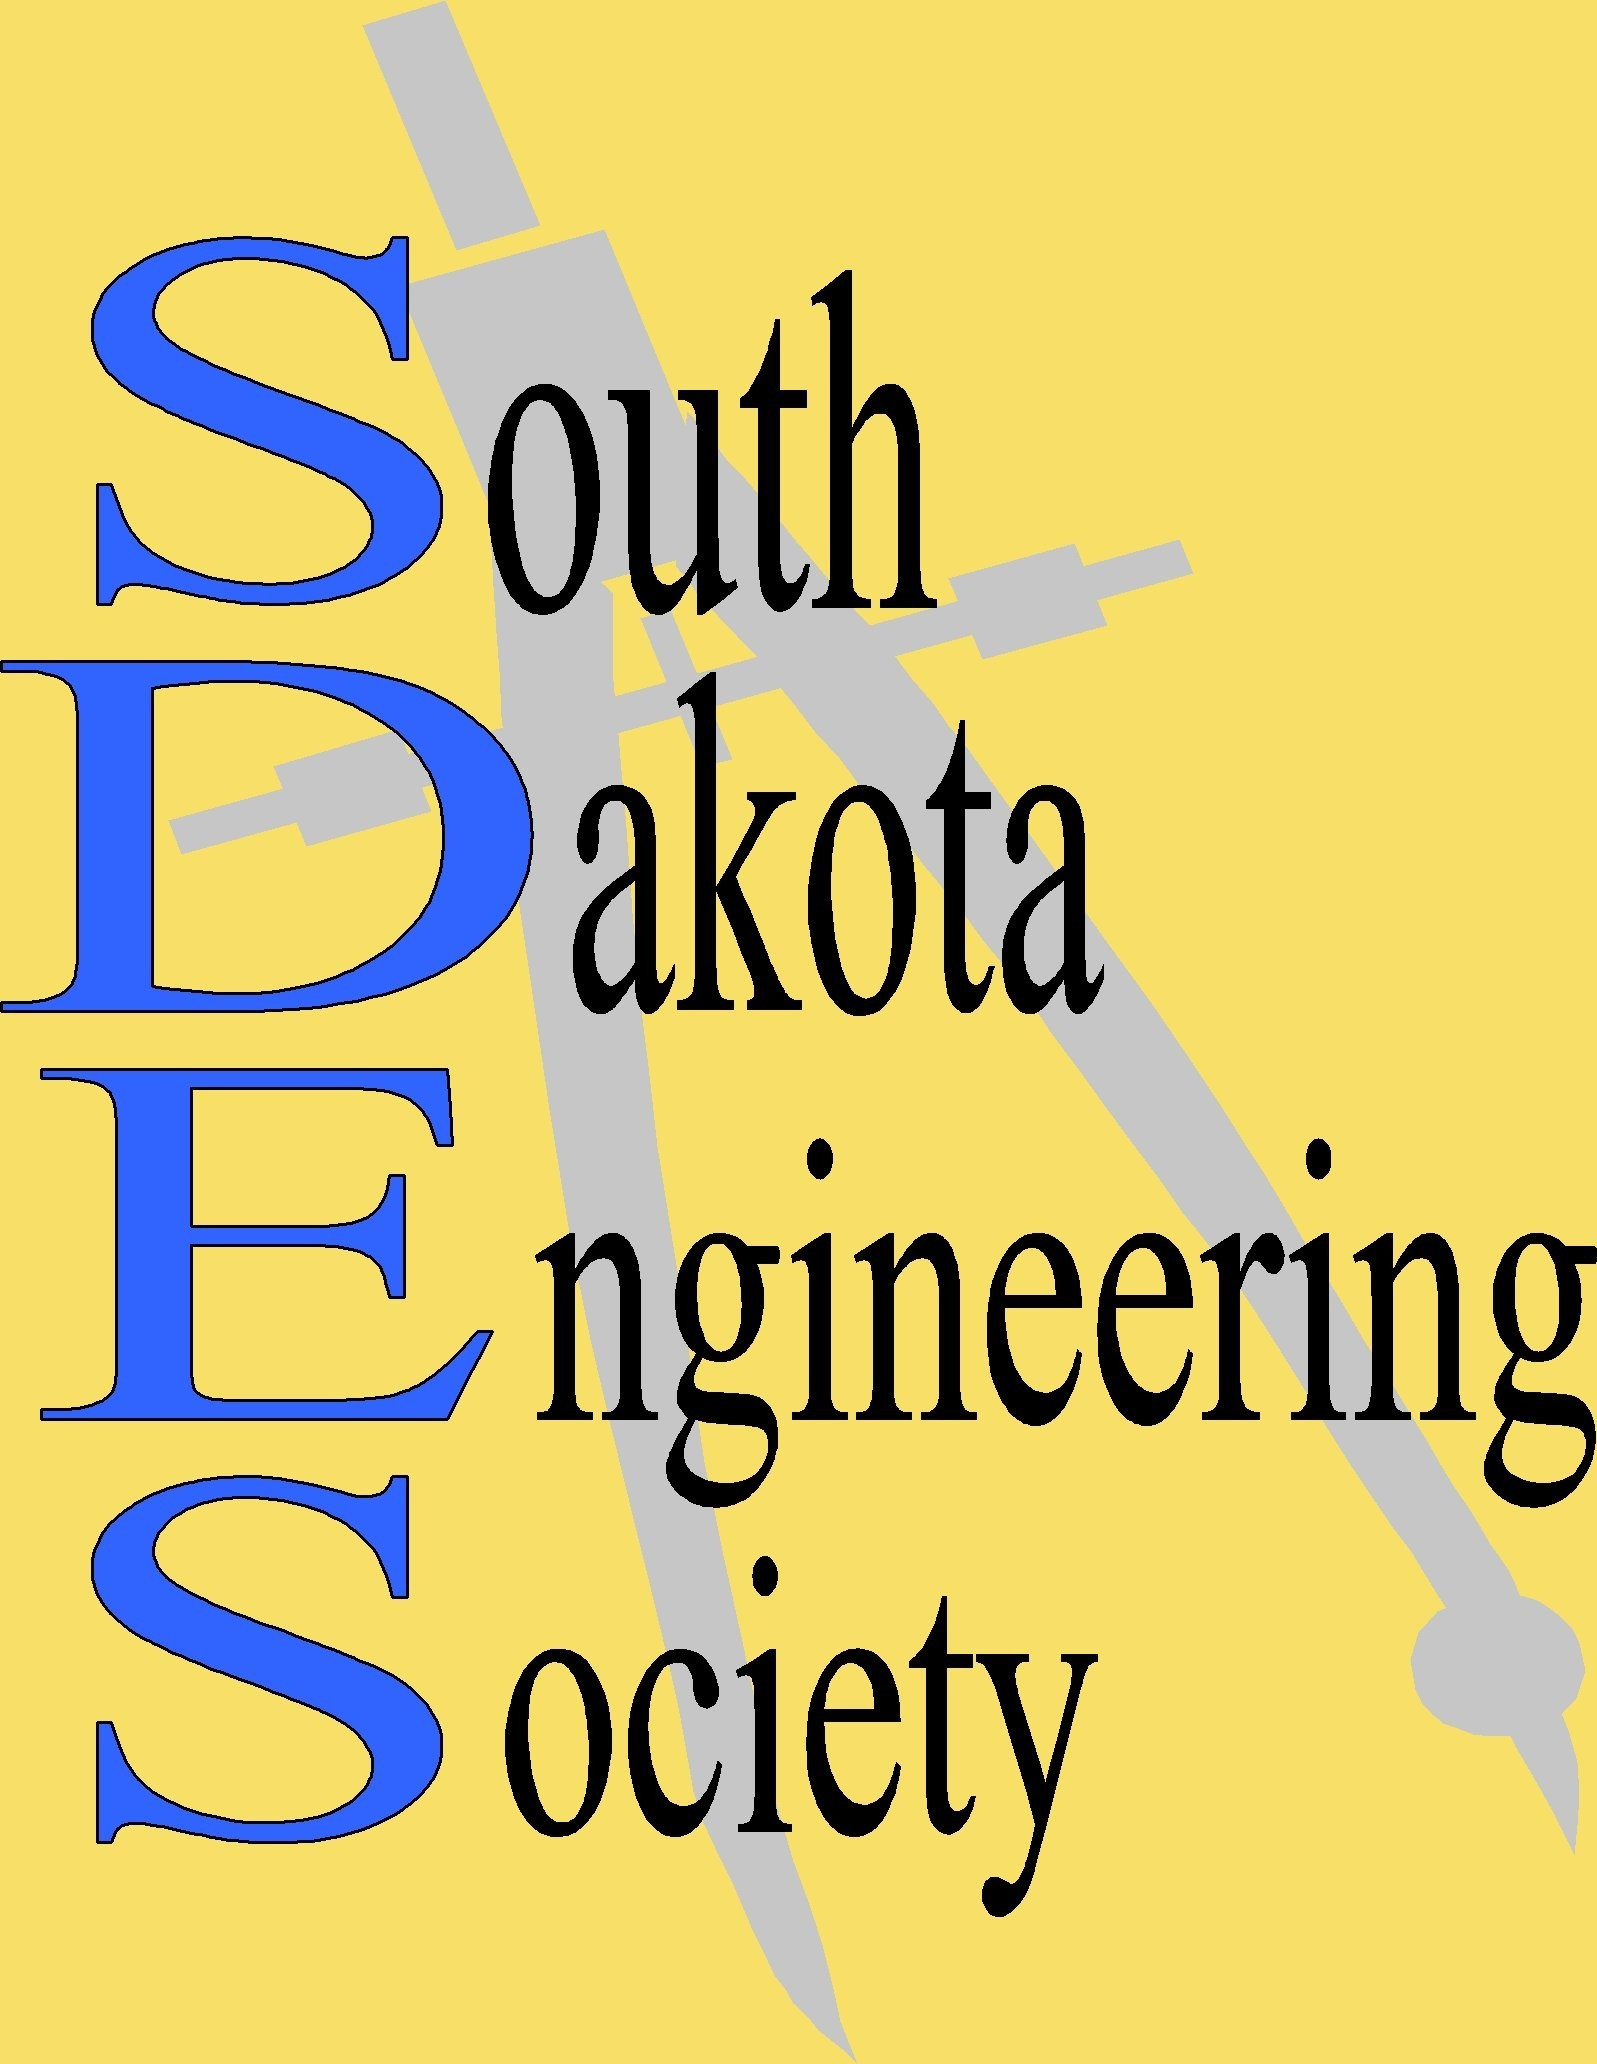 engineer and society Mobilizing the engineering community to become more effective in delivering real  products and services of benefit to society, especially in the developing world,.